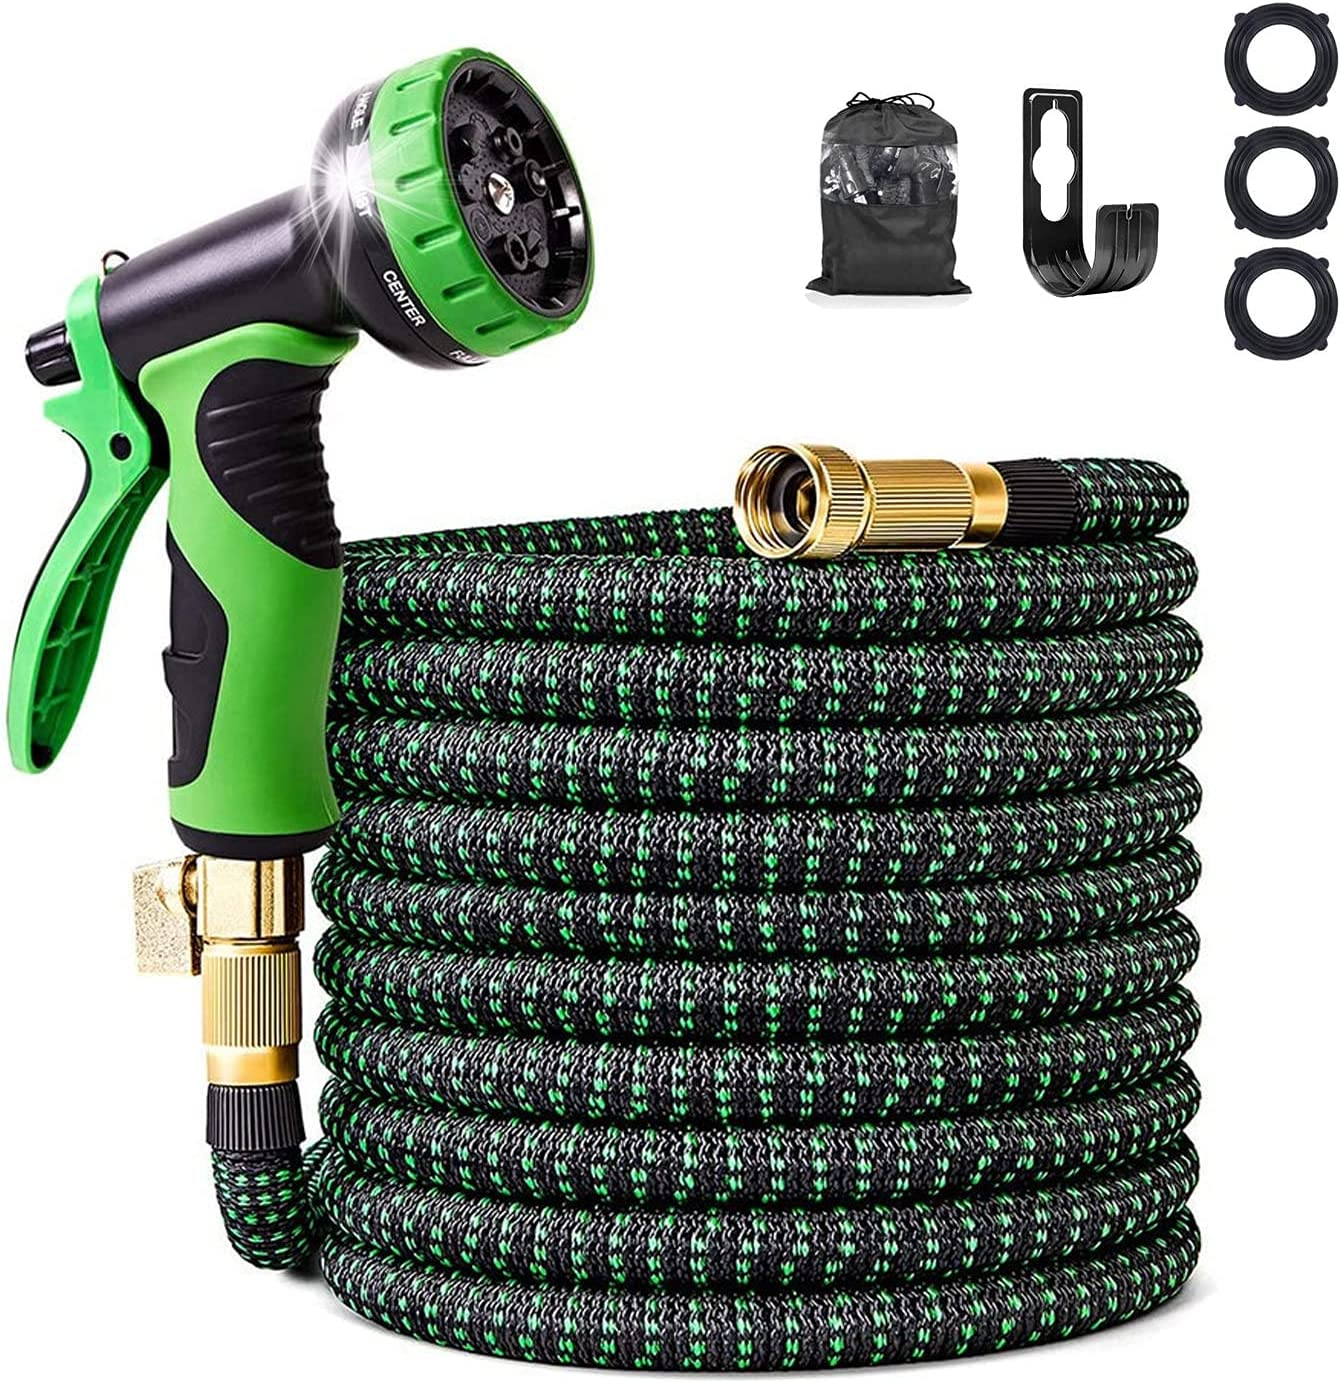 HUISHANGYOUMi Challenge the lowest price of Japan Expandable Garden Hose 50FT Solid Conn 4